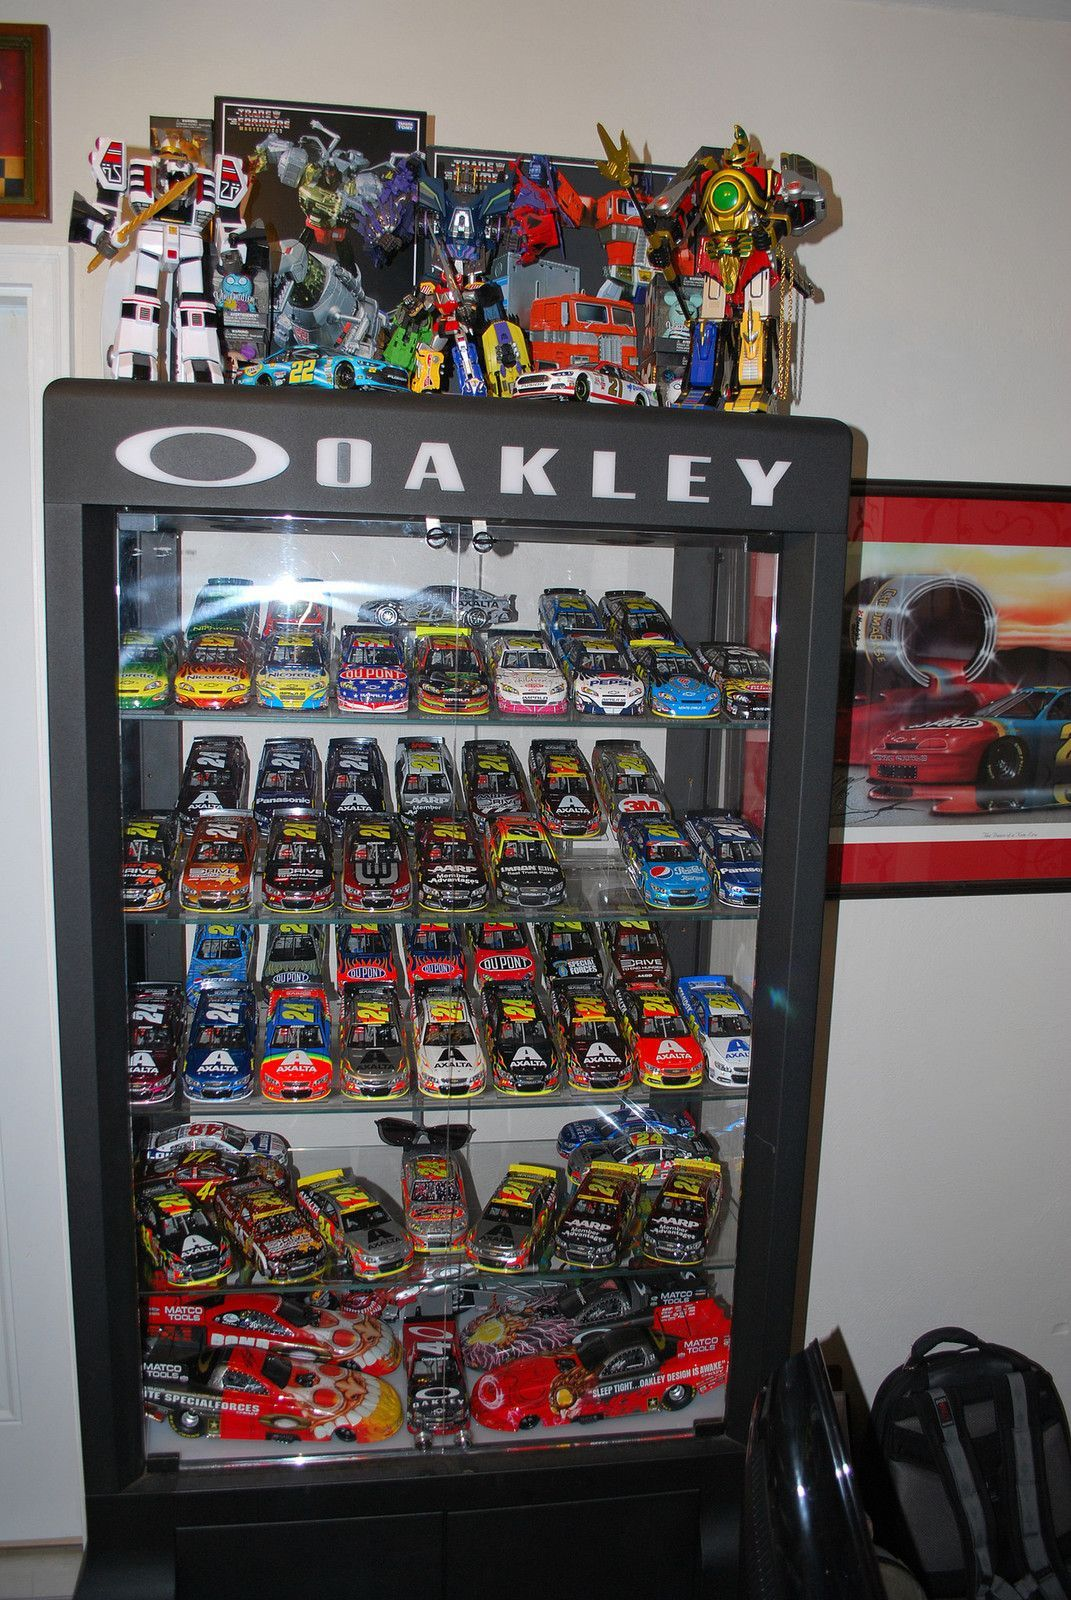 My O' Display case collection and Nitro's - 29060605582_8c0f5b1695_k.jpg